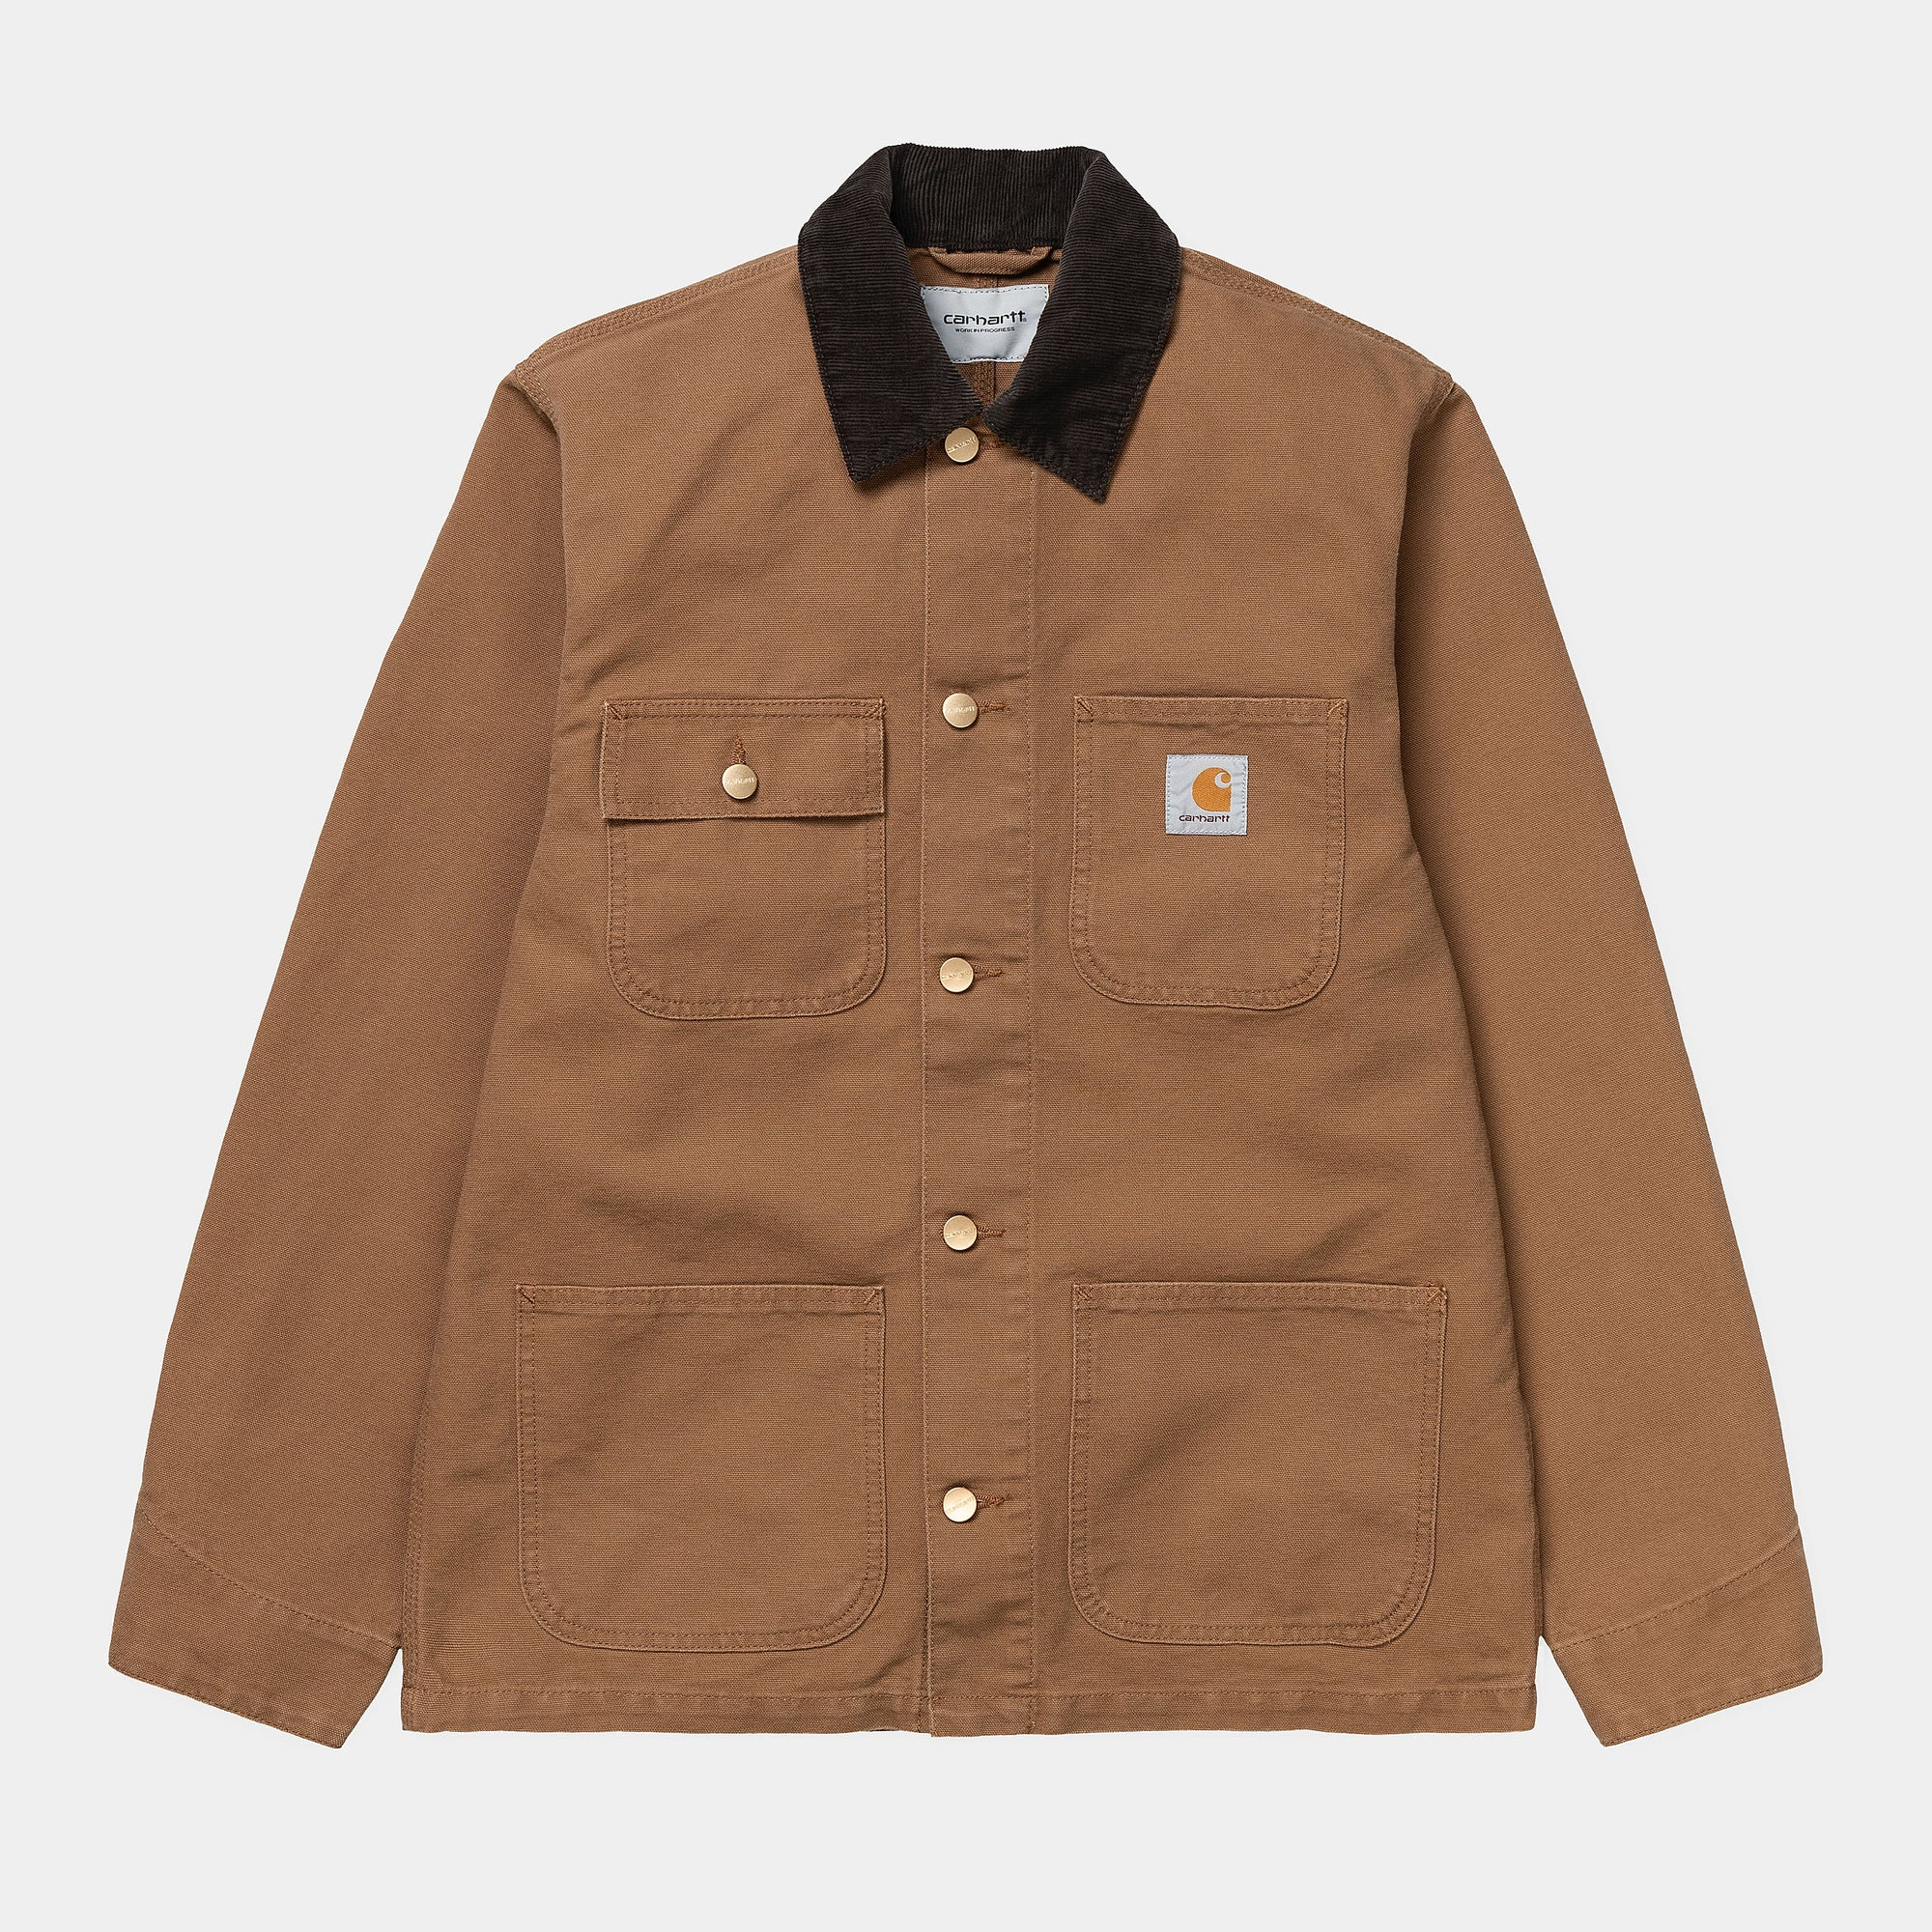 Carhartt WIP - Michigan Coat Hamilton Brown